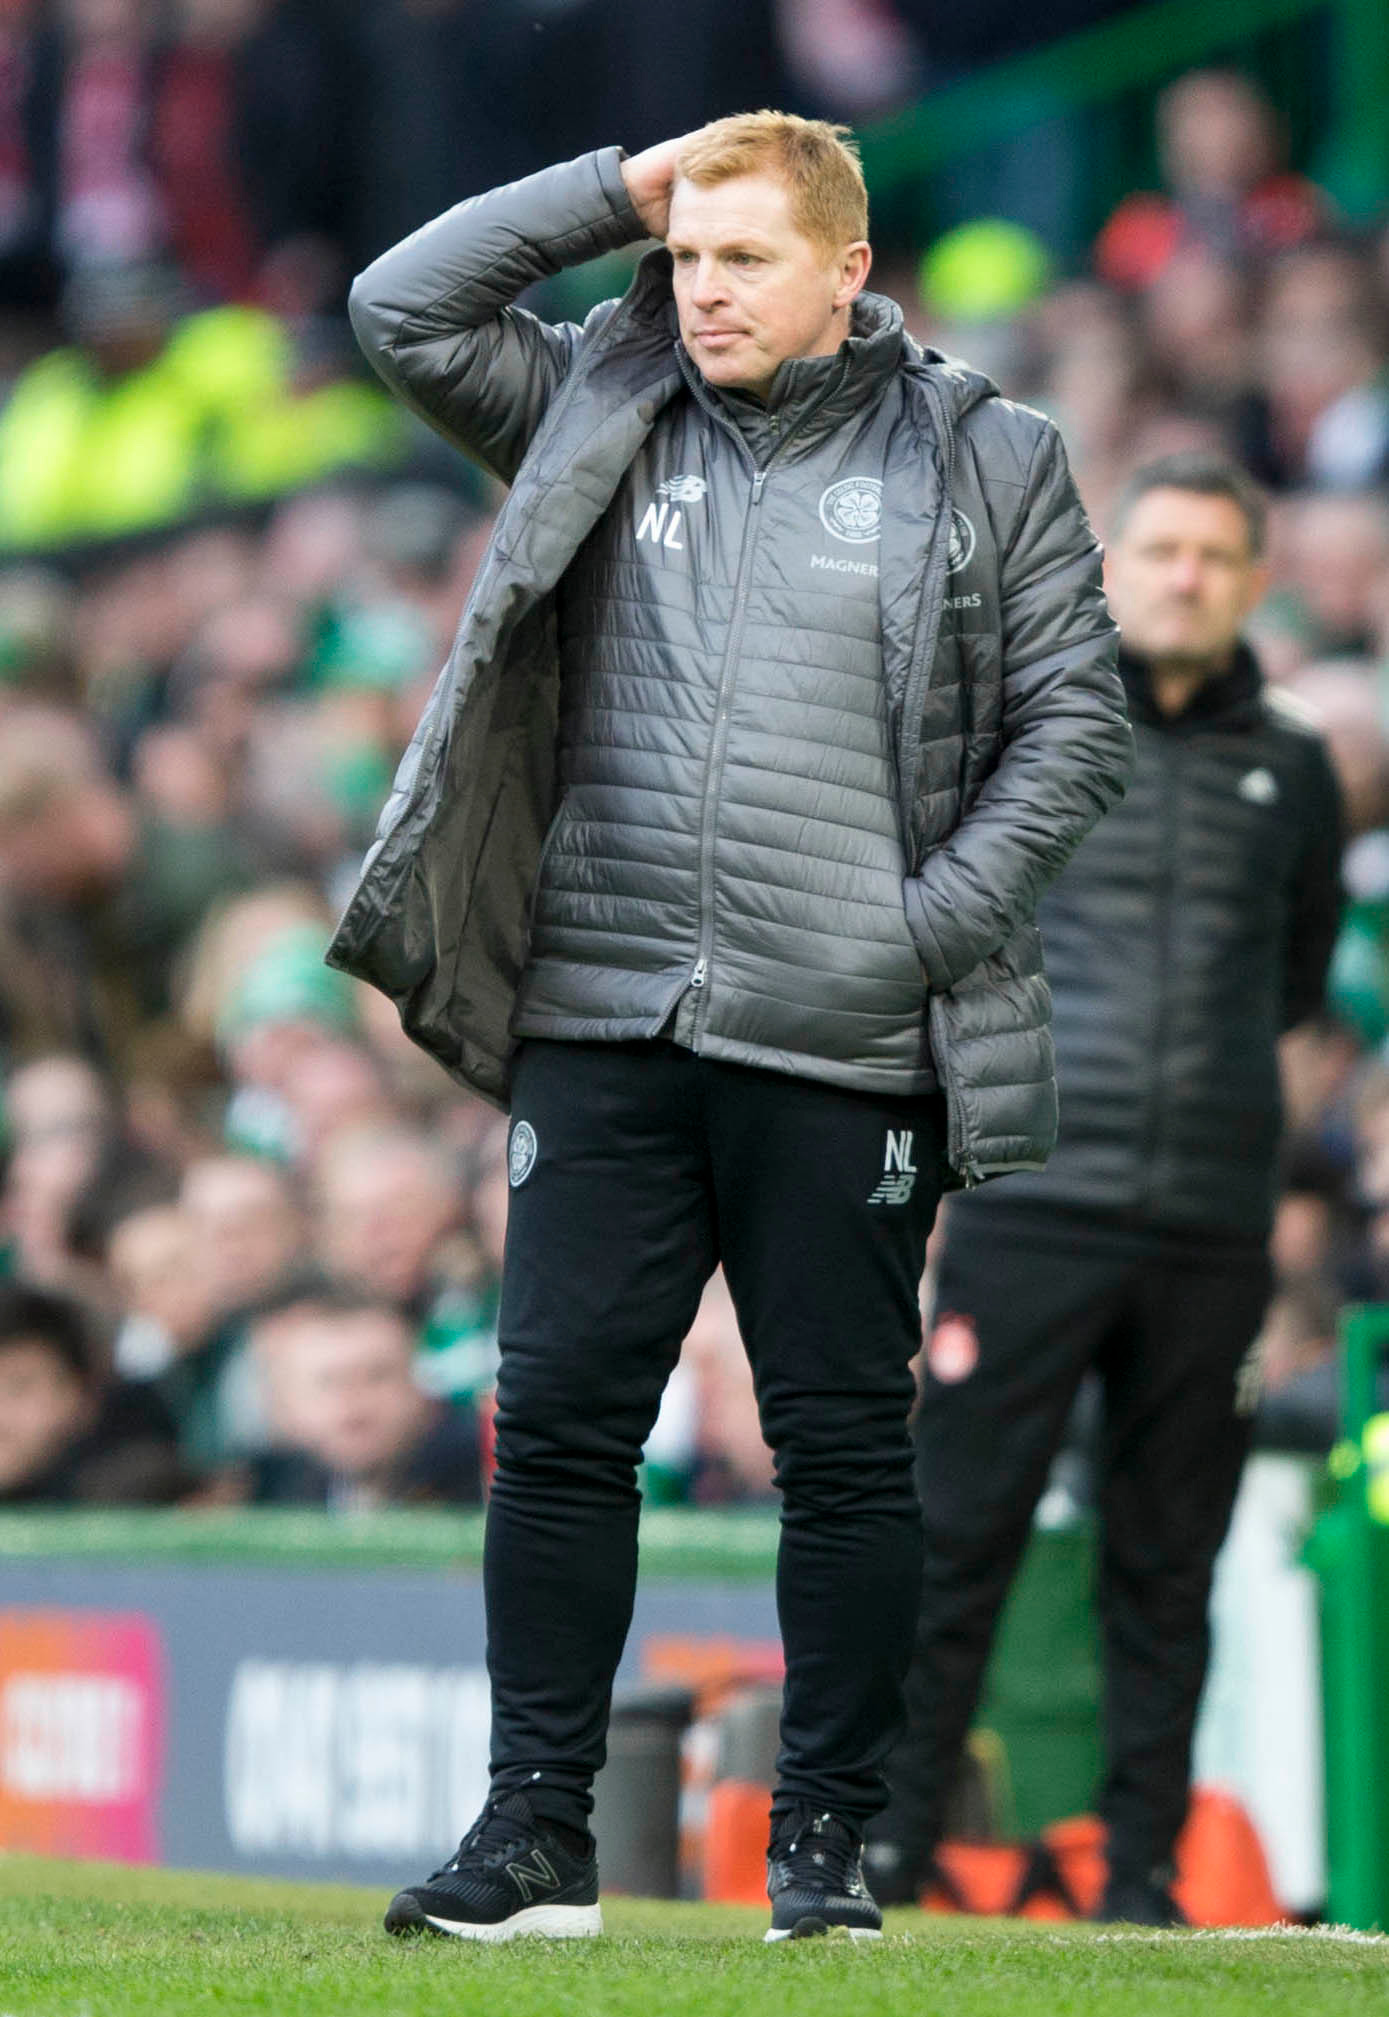 Unbeaten domestically this year, Lennon hopes for more Celtic dynamism at Dundee